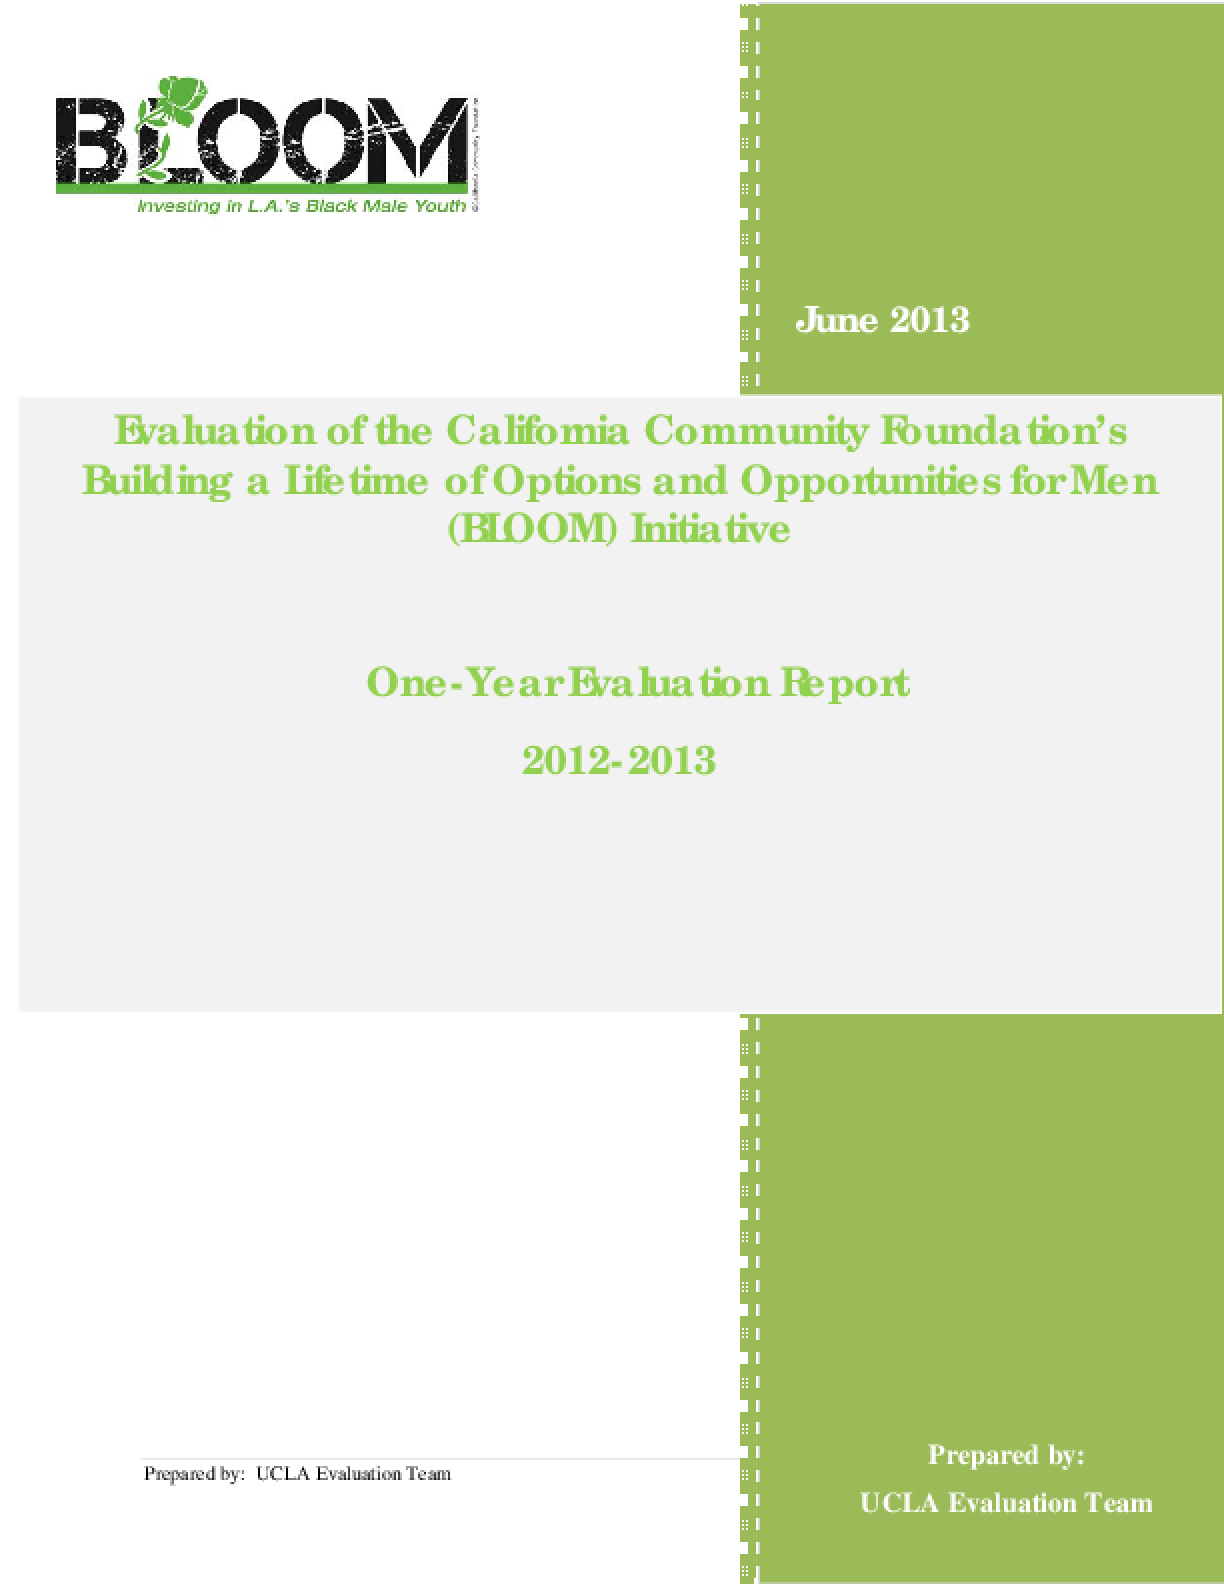 Evaluation of the California Community Foundation's Building a Lifetime of Options and Opportunities for Men (BLOOM) Initiative: One-Year Evaluation Report, 2012-2013